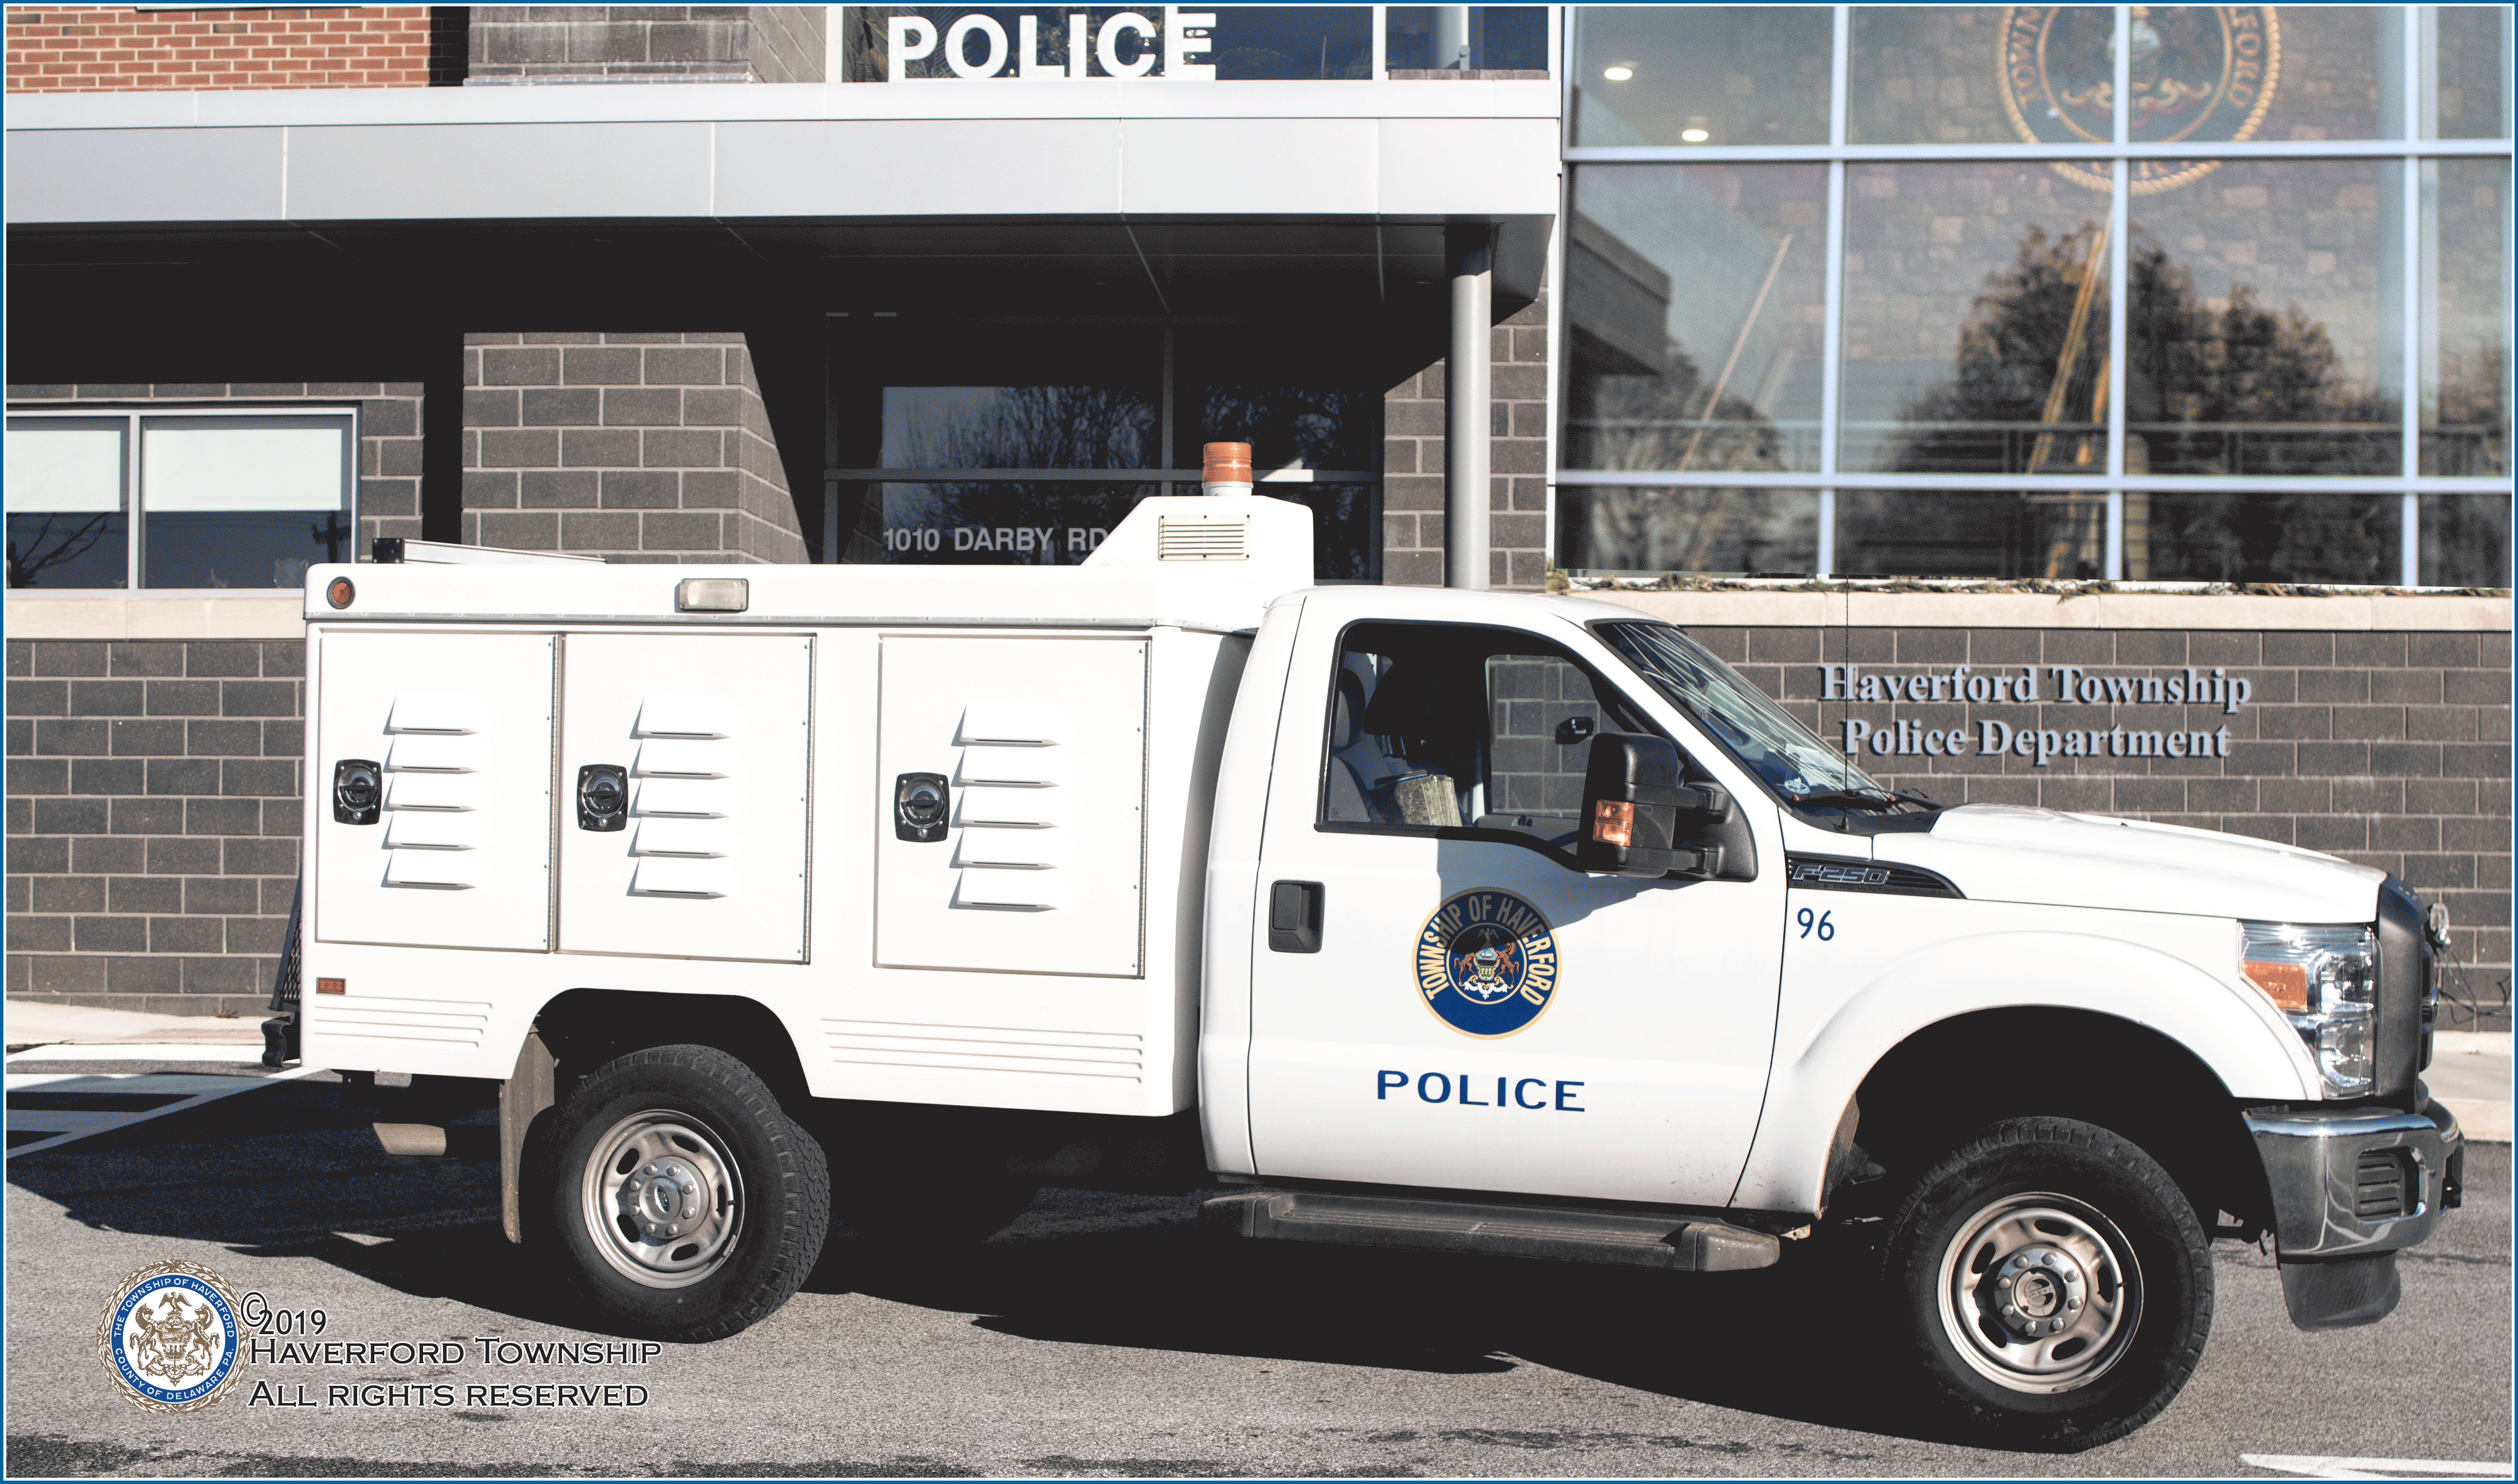 Image of the Animal Control vehicle